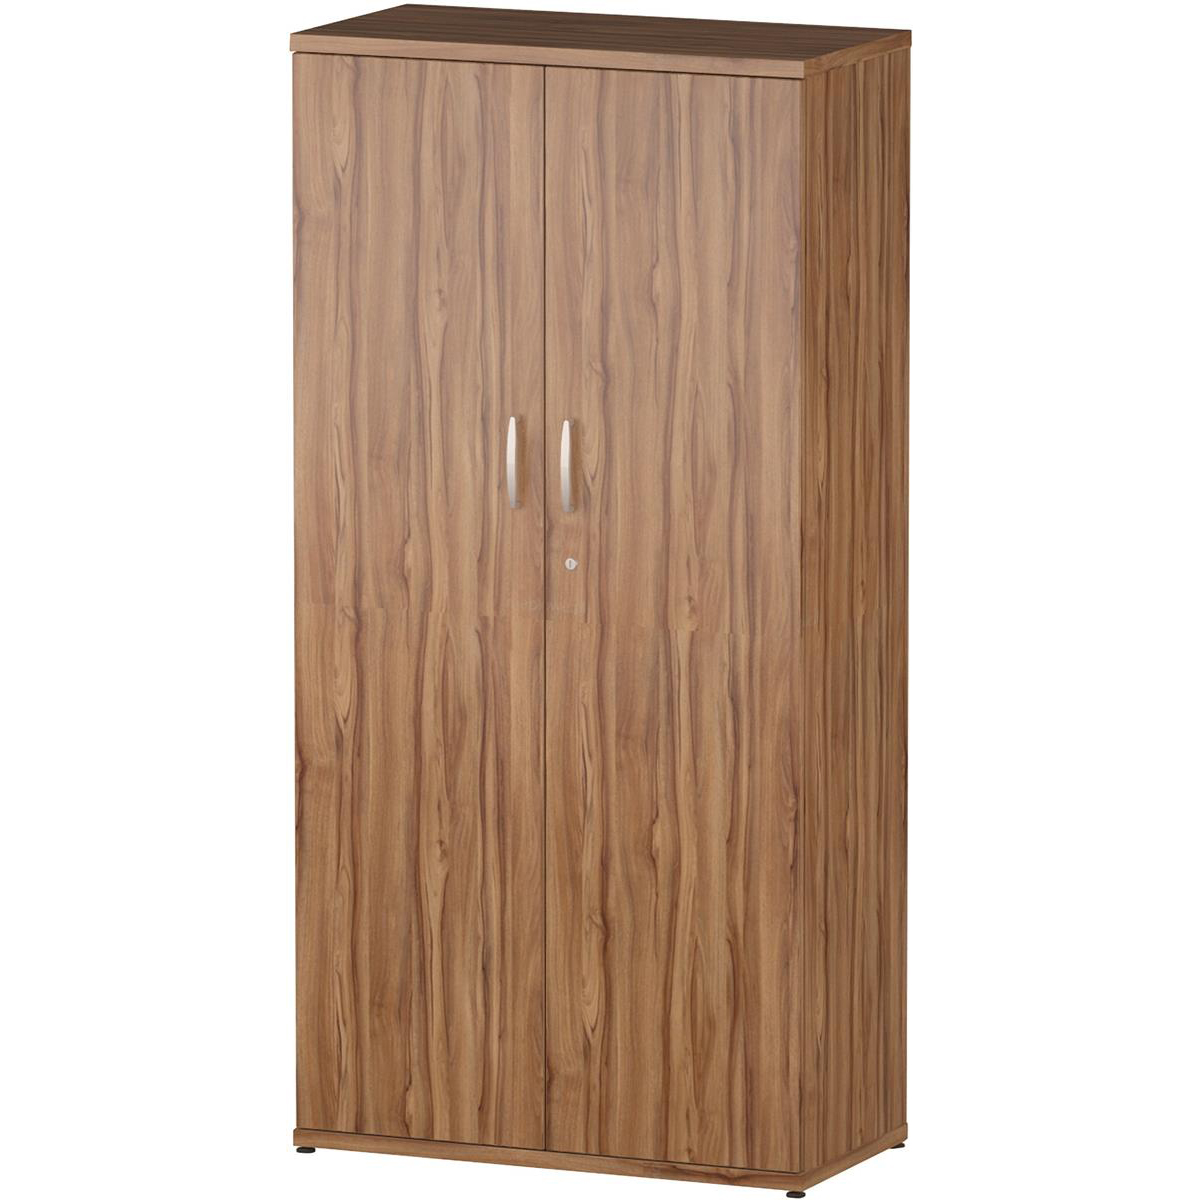 &TREXUS HIGH CUPBOARD 800X400X1600 WNT